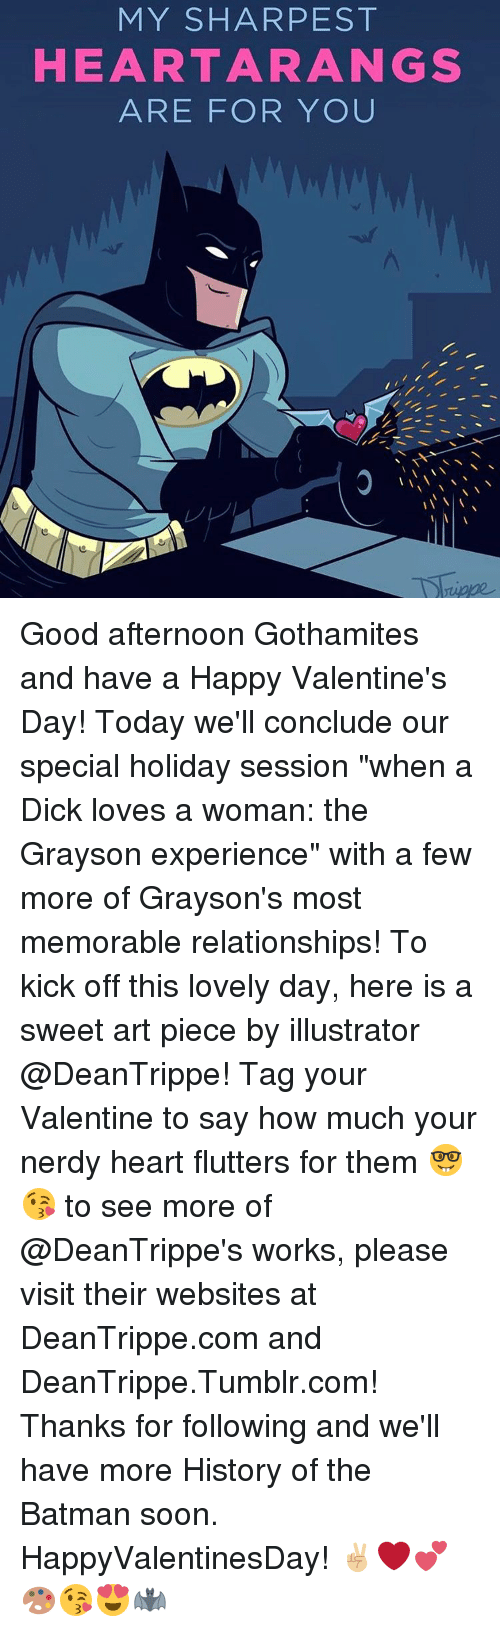 """Batman, Dicks, and Memes: MY SHAR PEST  HEART ARA NGS  ARE FOR YOU Good afternoon Gothamites and have a Happy Valentine's Day! Today we'll conclude our special holiday session """"when a Dick loves a woman: the Grayson experience"""" with a few more of Grayson's most memorable relationships! To kick off this lovely day, here is a sweet art piece by illustrator @DeanTrippe! Tag your Valentine to say how much your nerdy heart flutters for them 🤓😘 to see more of @DeanTrippe's works, please visit their websites at DeanTrippe.com and DeanTrippe.Tumblr.com! Thanks for following and we'll have more History of the Batman soon. HappyValentinesDay! ✌🏼❤️💕🎨😘😍🦇"""